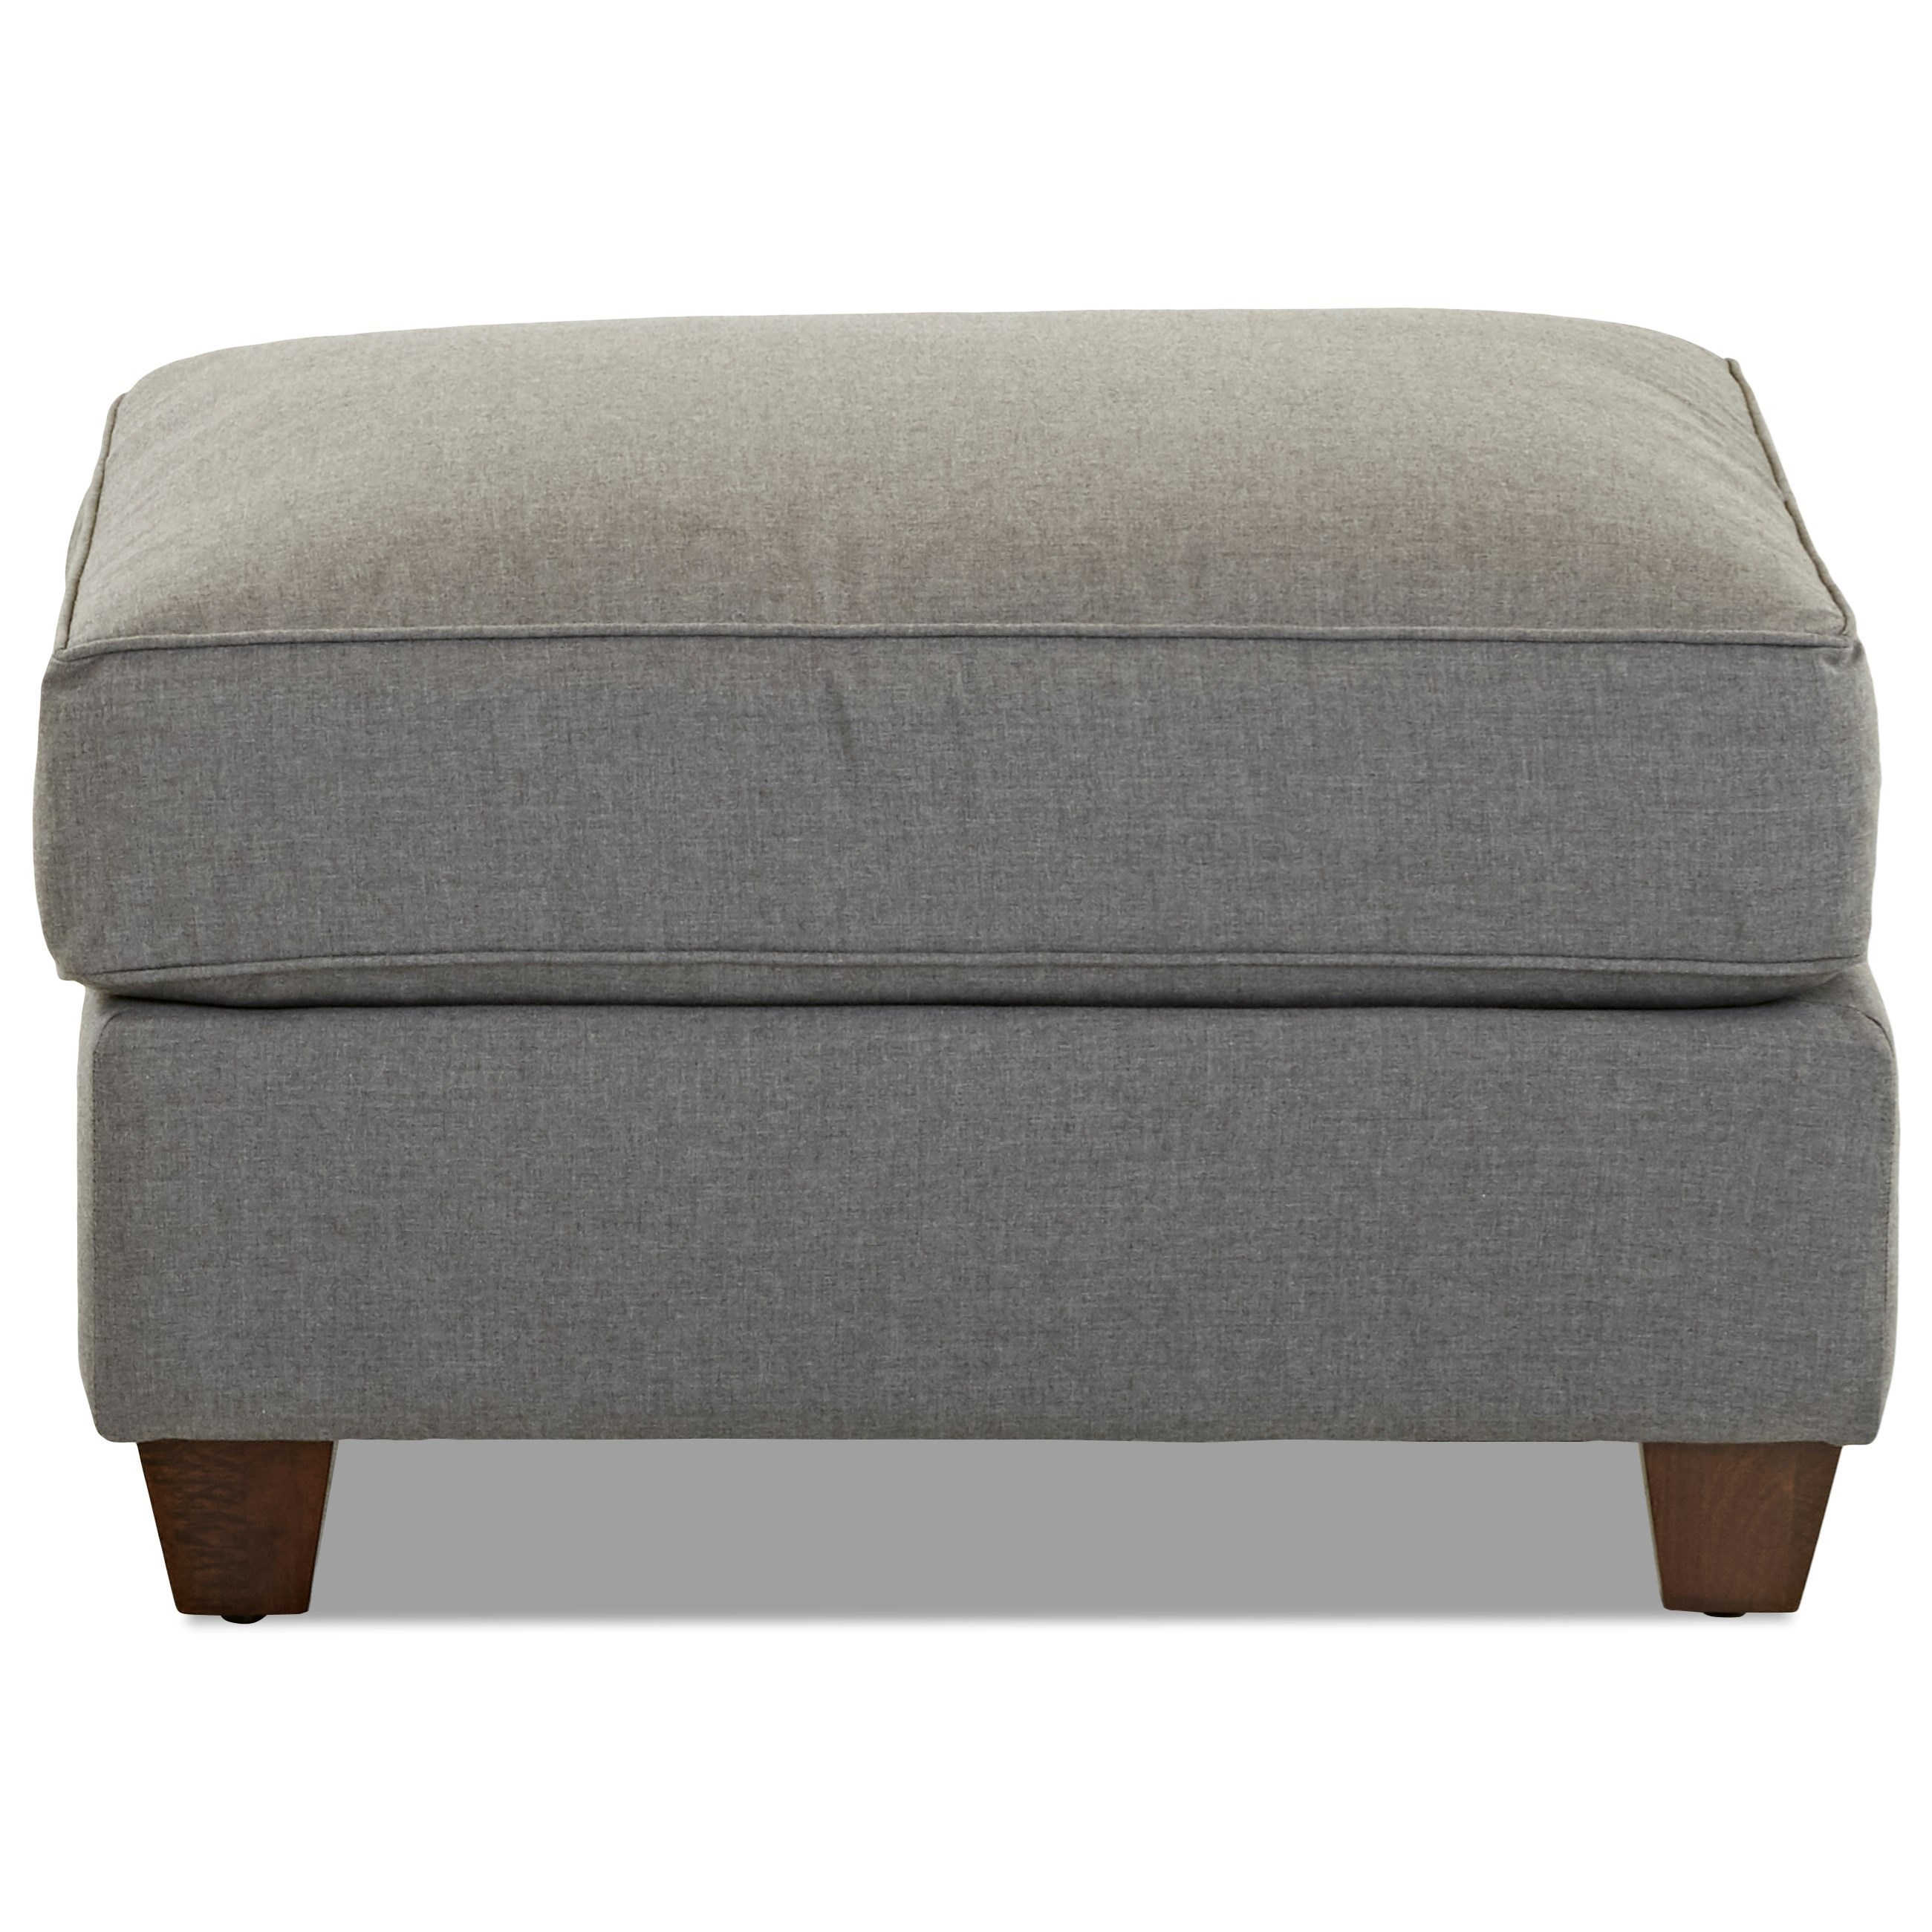 Lillington Distinctions  Ottoman by Klaussner at Johnny Janosik